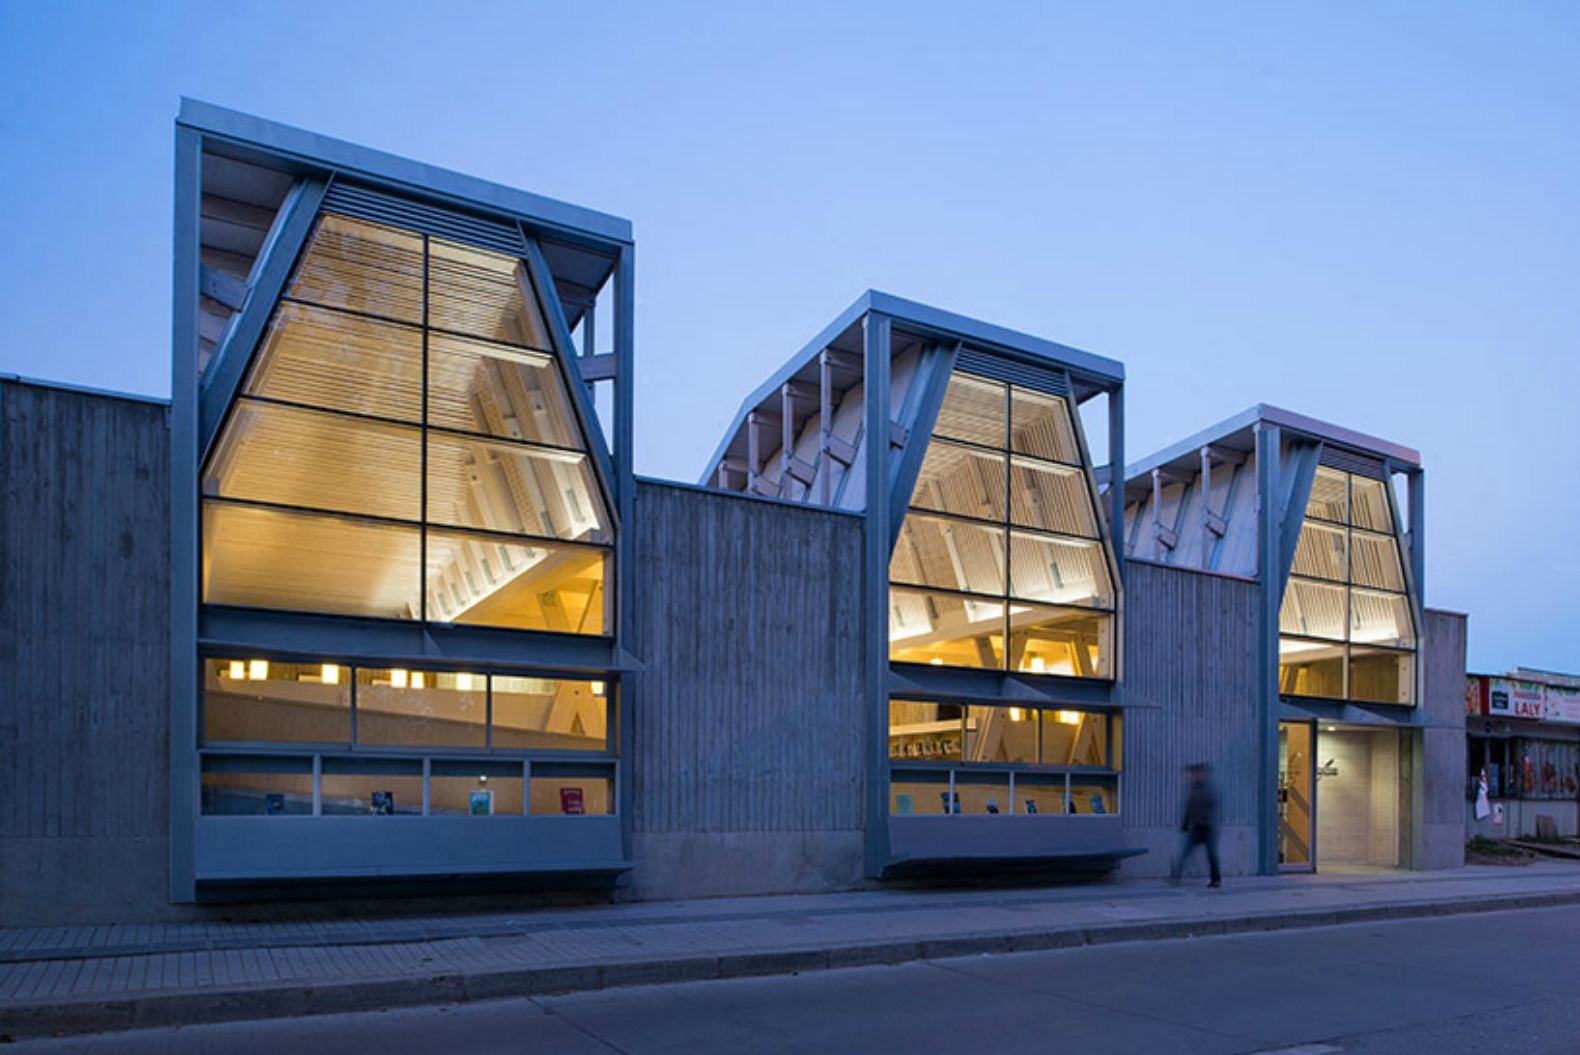 Spectacular Library In Chile Built With Locally Sourced Wood From Earthquake Stricken Town